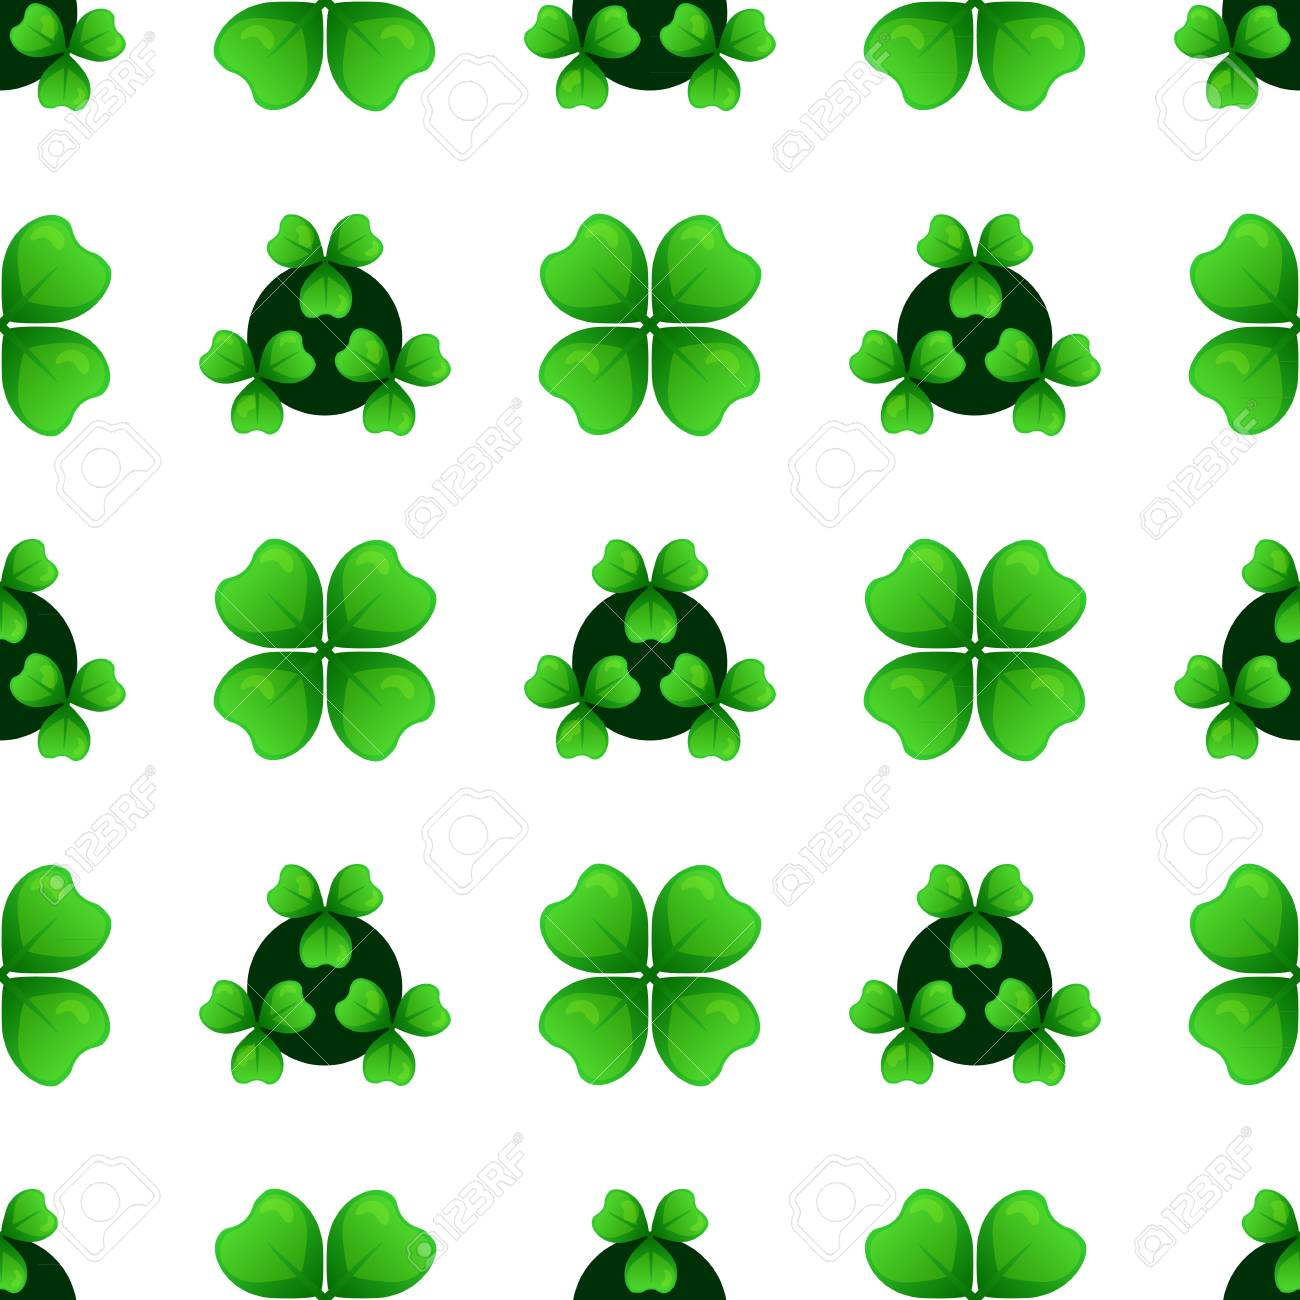 Green Clover Sprigs With Four Leaves And Three Leafed Shamrock